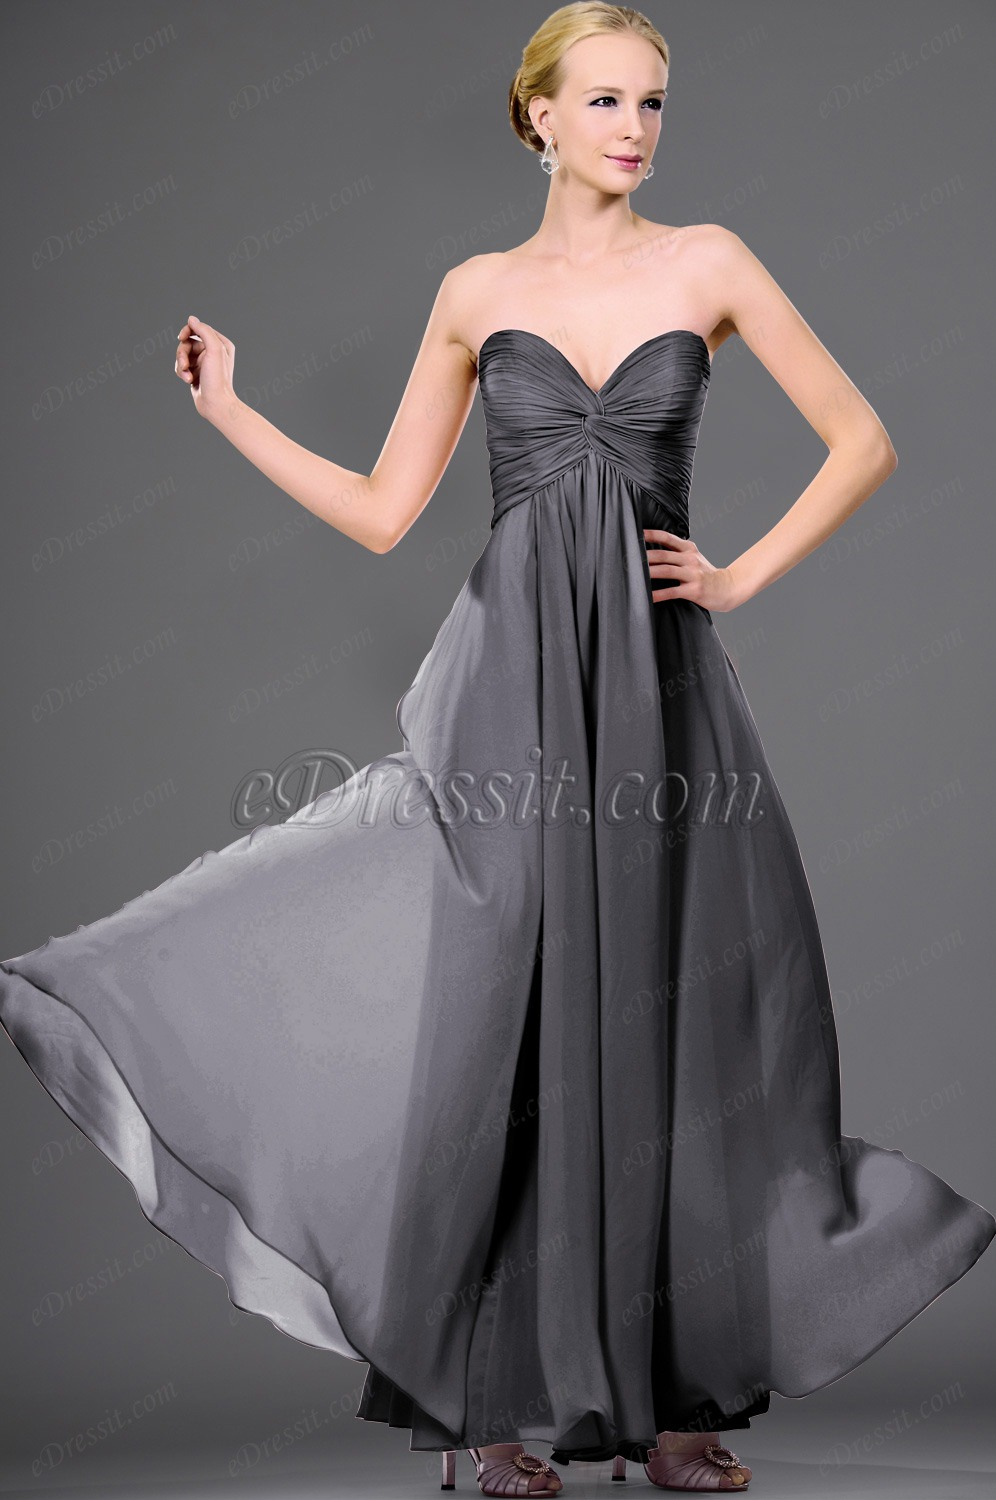 Clearance Sale !eDressit strapless Dark grey evening dress (00105701B)